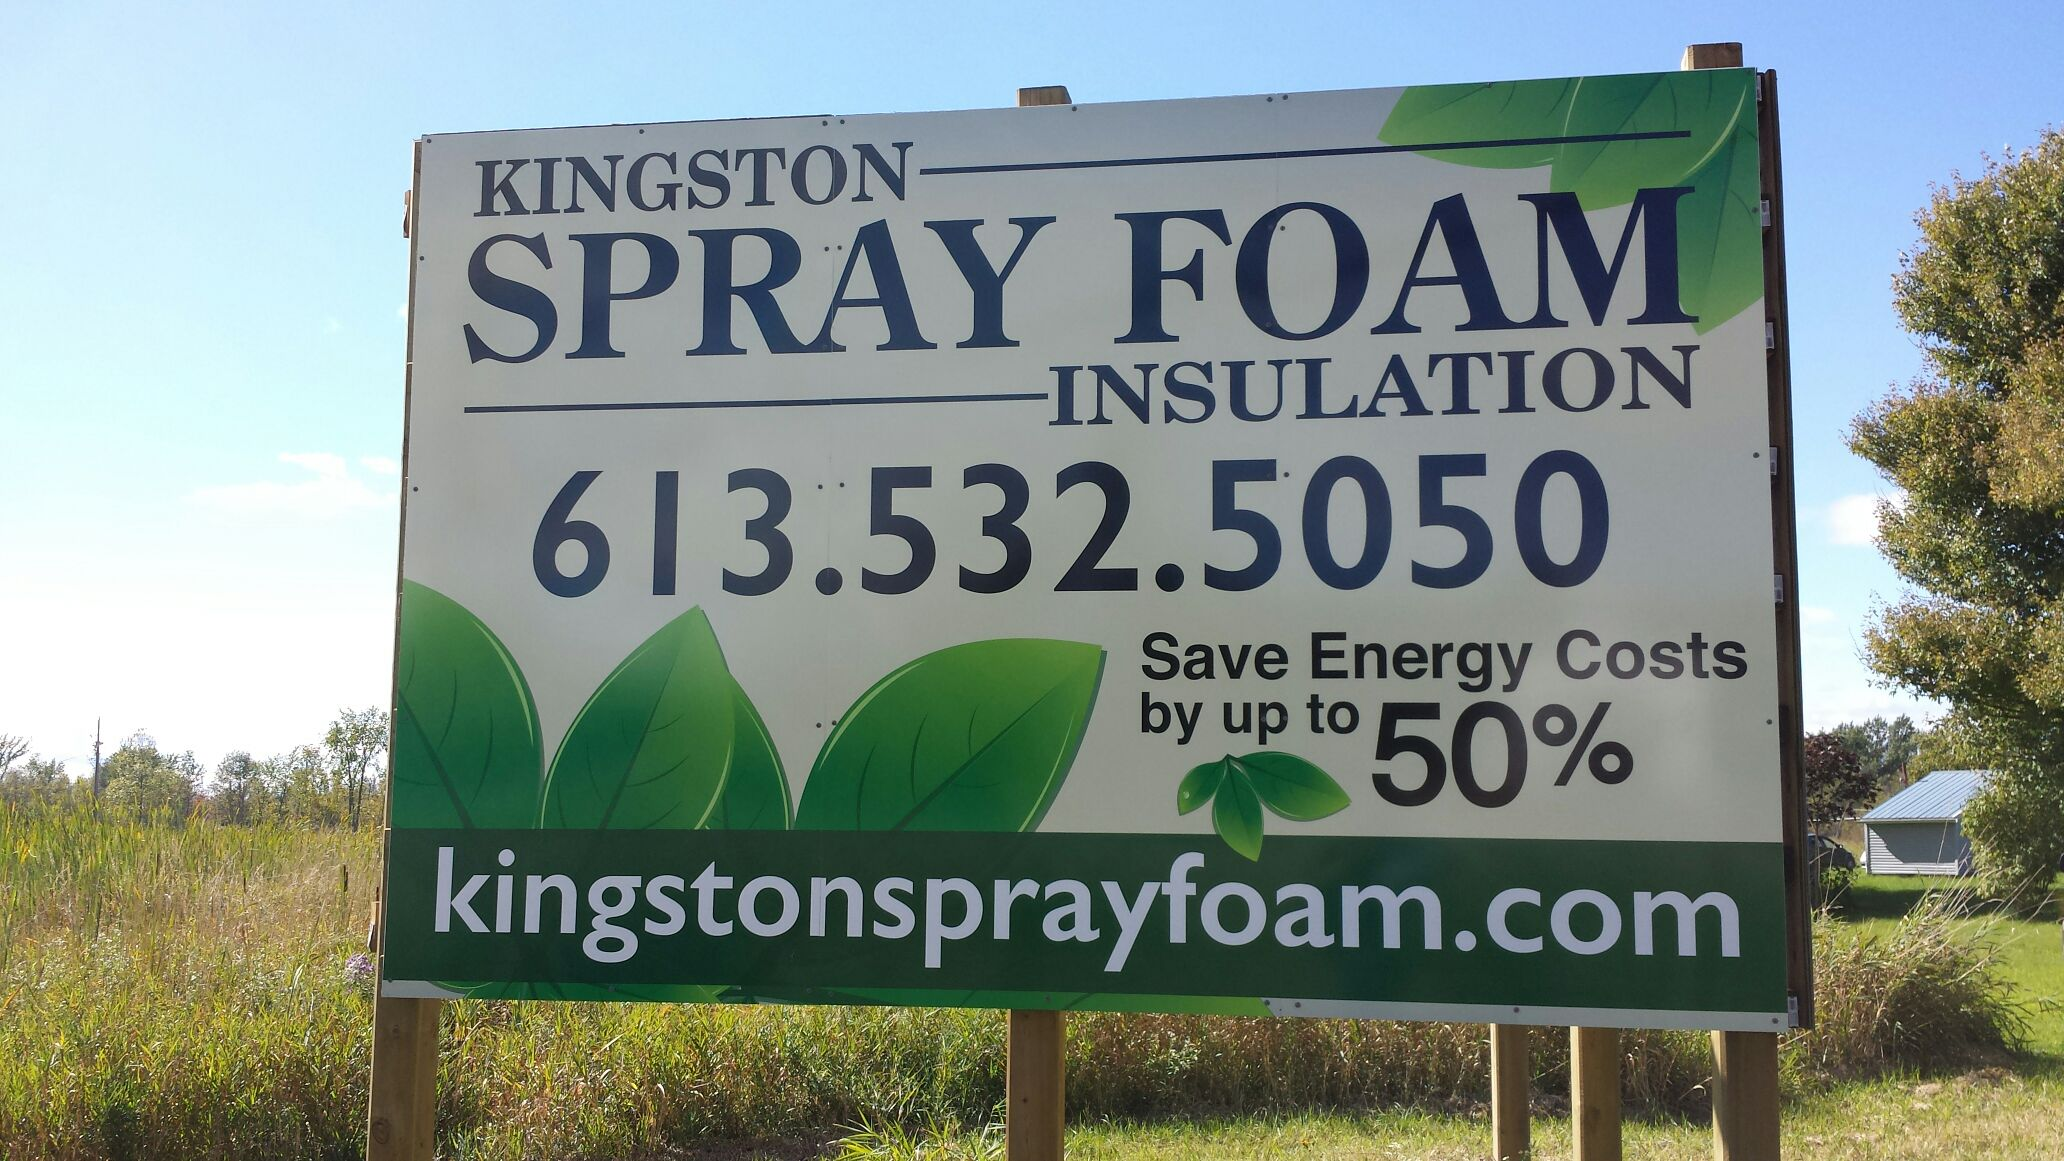 Kingston Spray Foam large frame sign